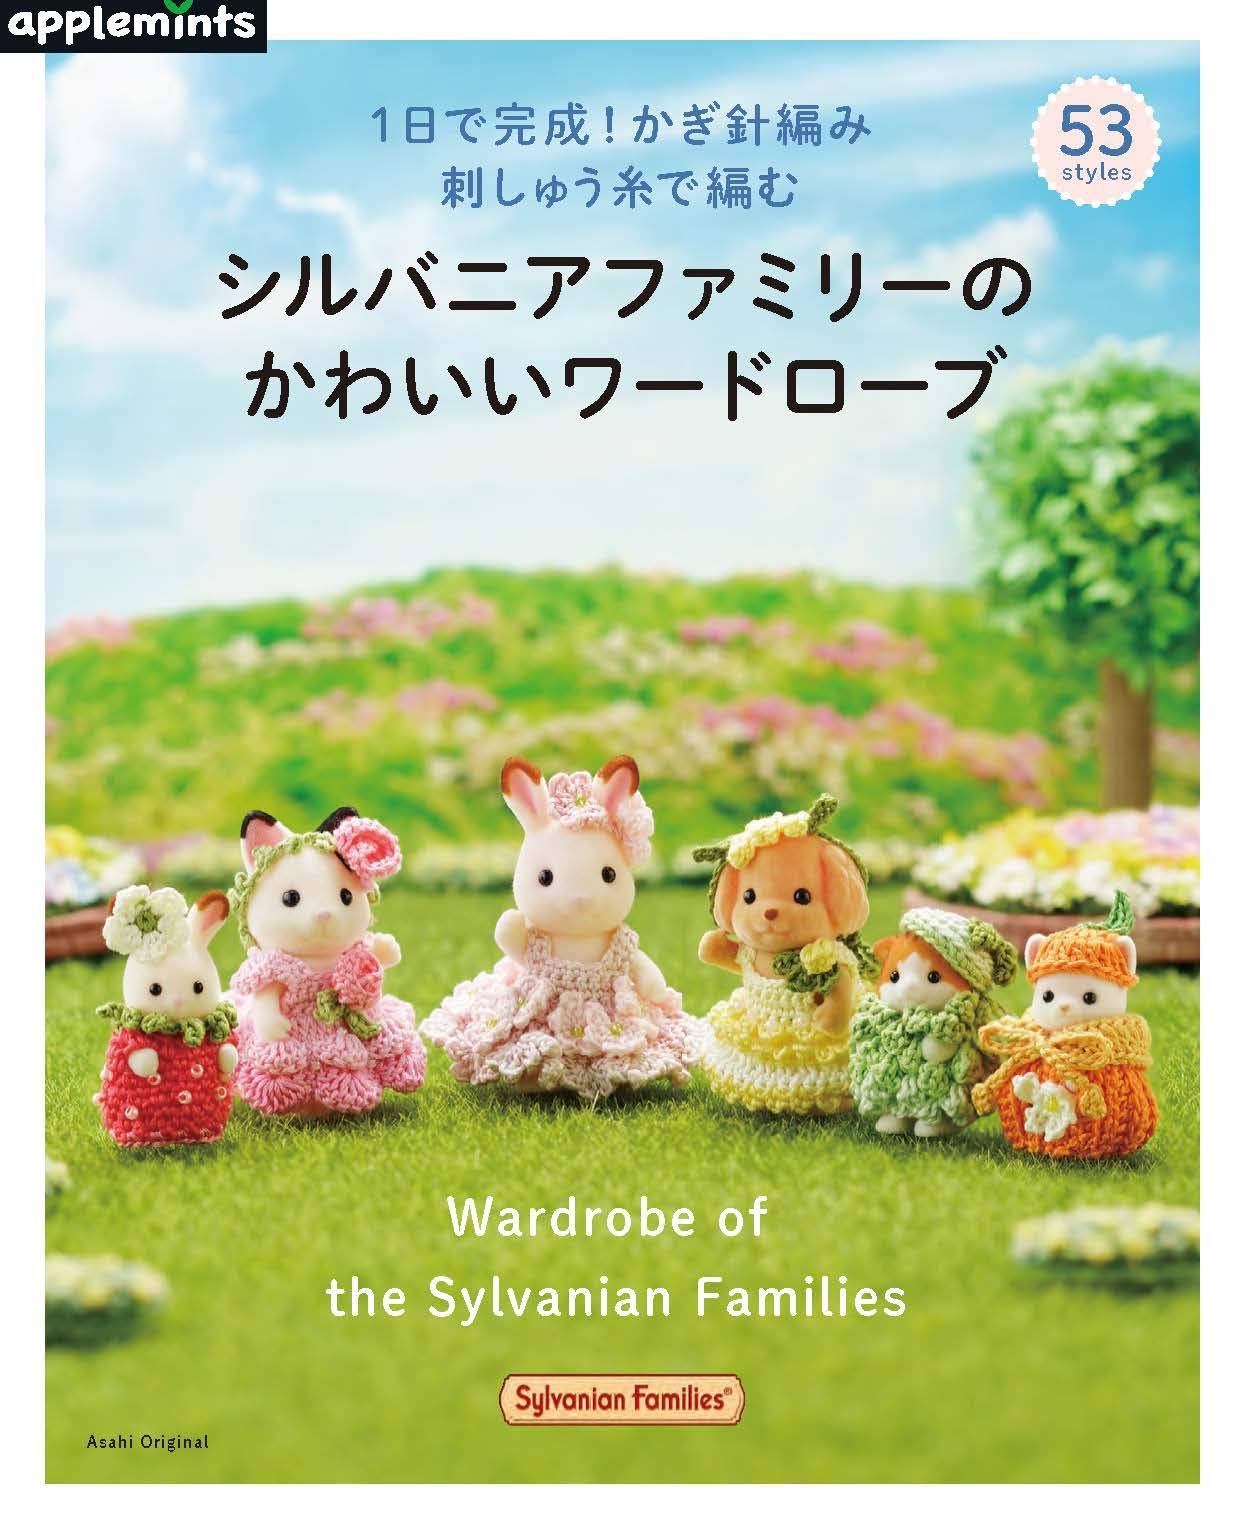 Completion in a day! Cute wardrobe of the Sylvania family knitting with crocheted embroidery thread